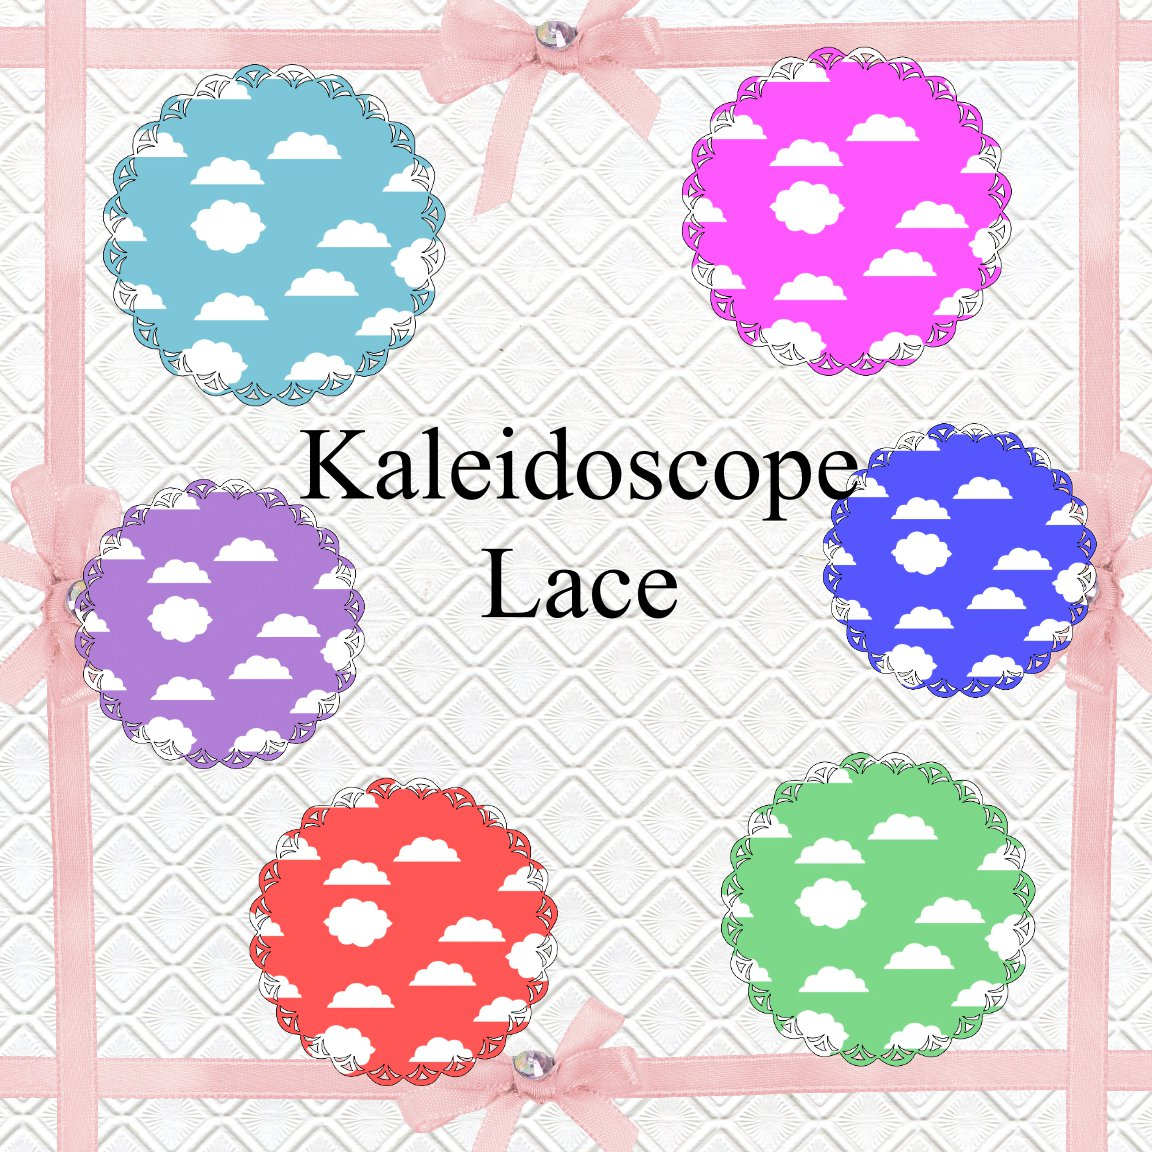 Kaleidoscope Lace 1a-Digital ClipArt-Art Clip-Gift Tag-Tshirt--Notebook-Scrapbook-Banner-Background